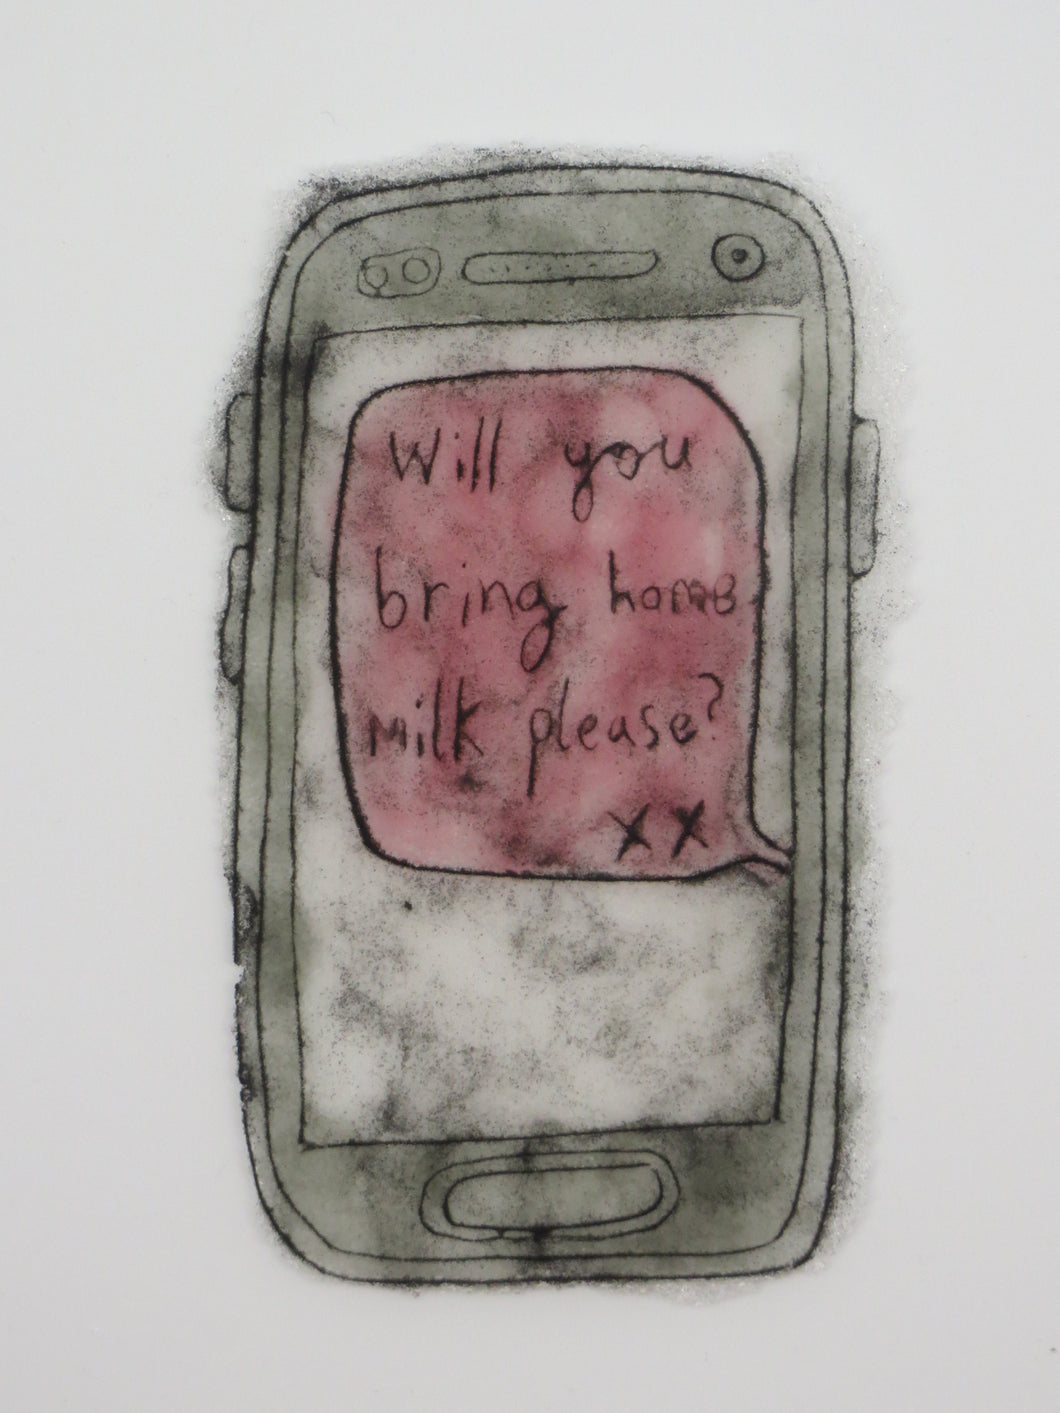 Bring Home Milk Please in Pink - Modern Love Letter in Glass